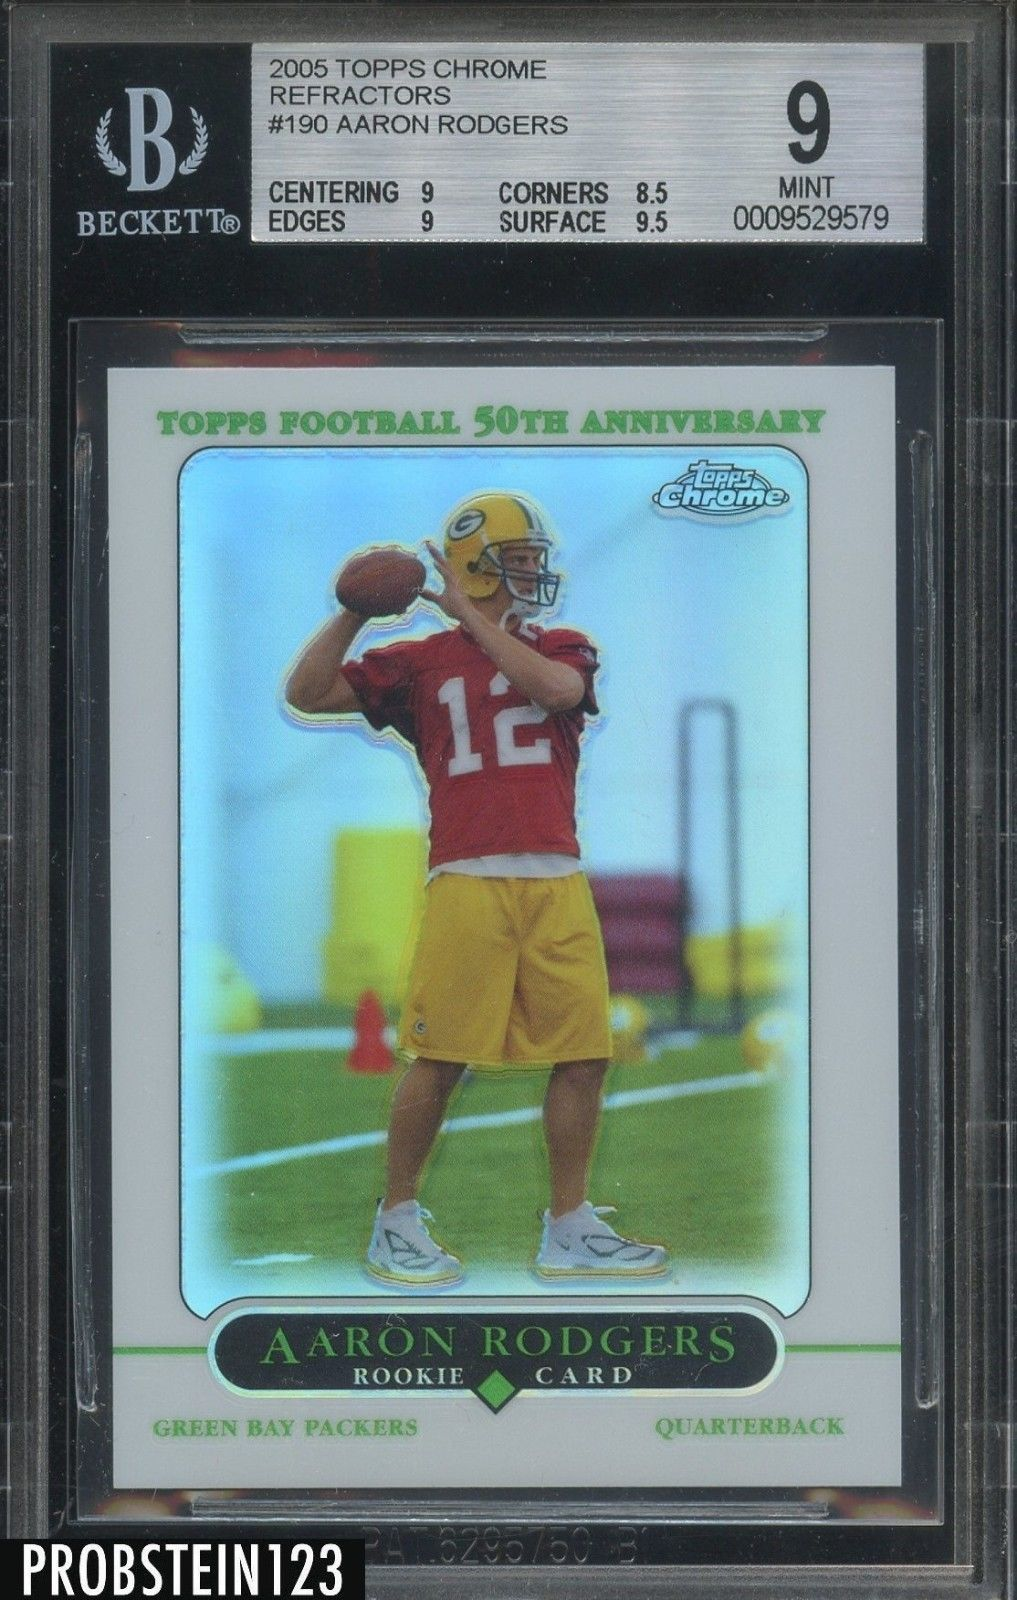 Sportsmemorbilia 2005 Topps Chrome Refractor 190 Aaron Rodgers Rc Rookie Bgs 9 Mint W 9 5 Collectibles Aaron Rodgers Football Cards Sports Cards